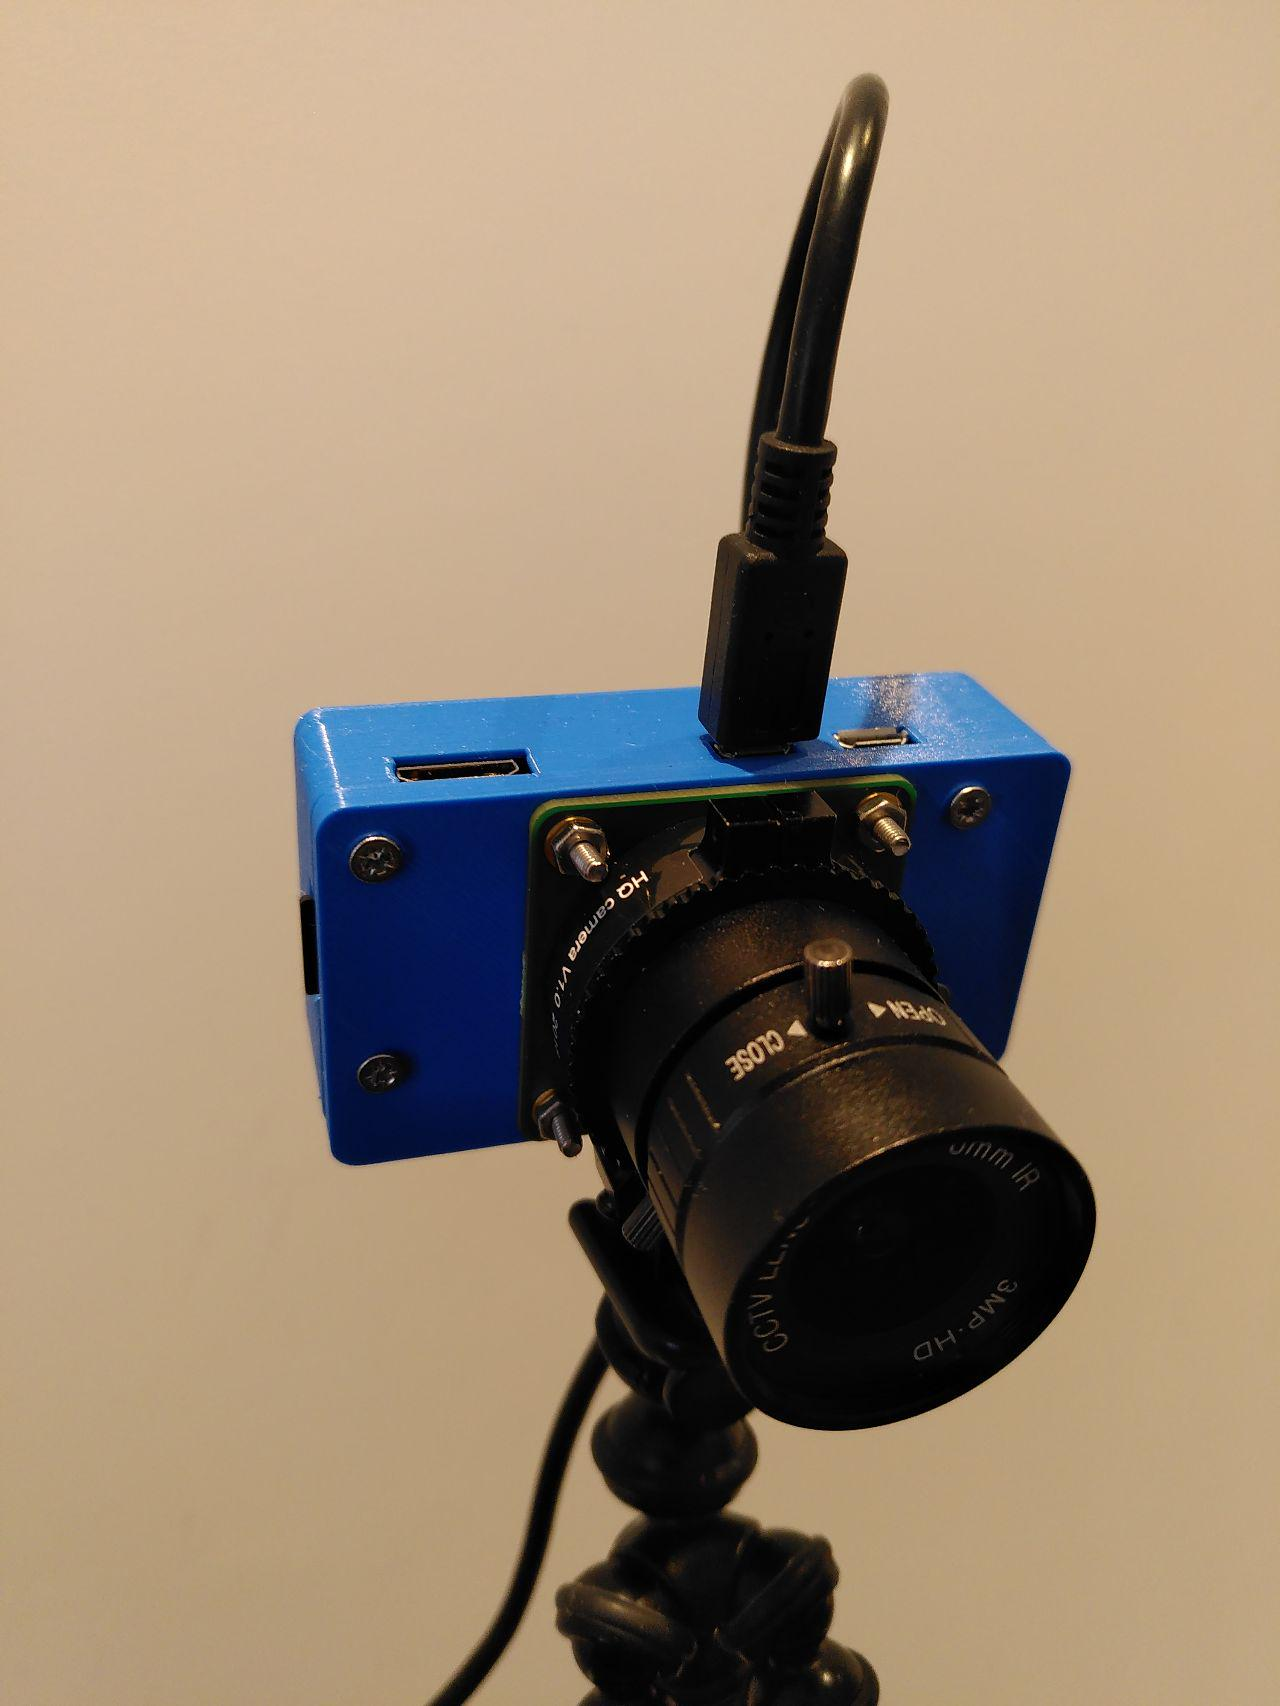 DIY Webcam made with Raspberry Pi